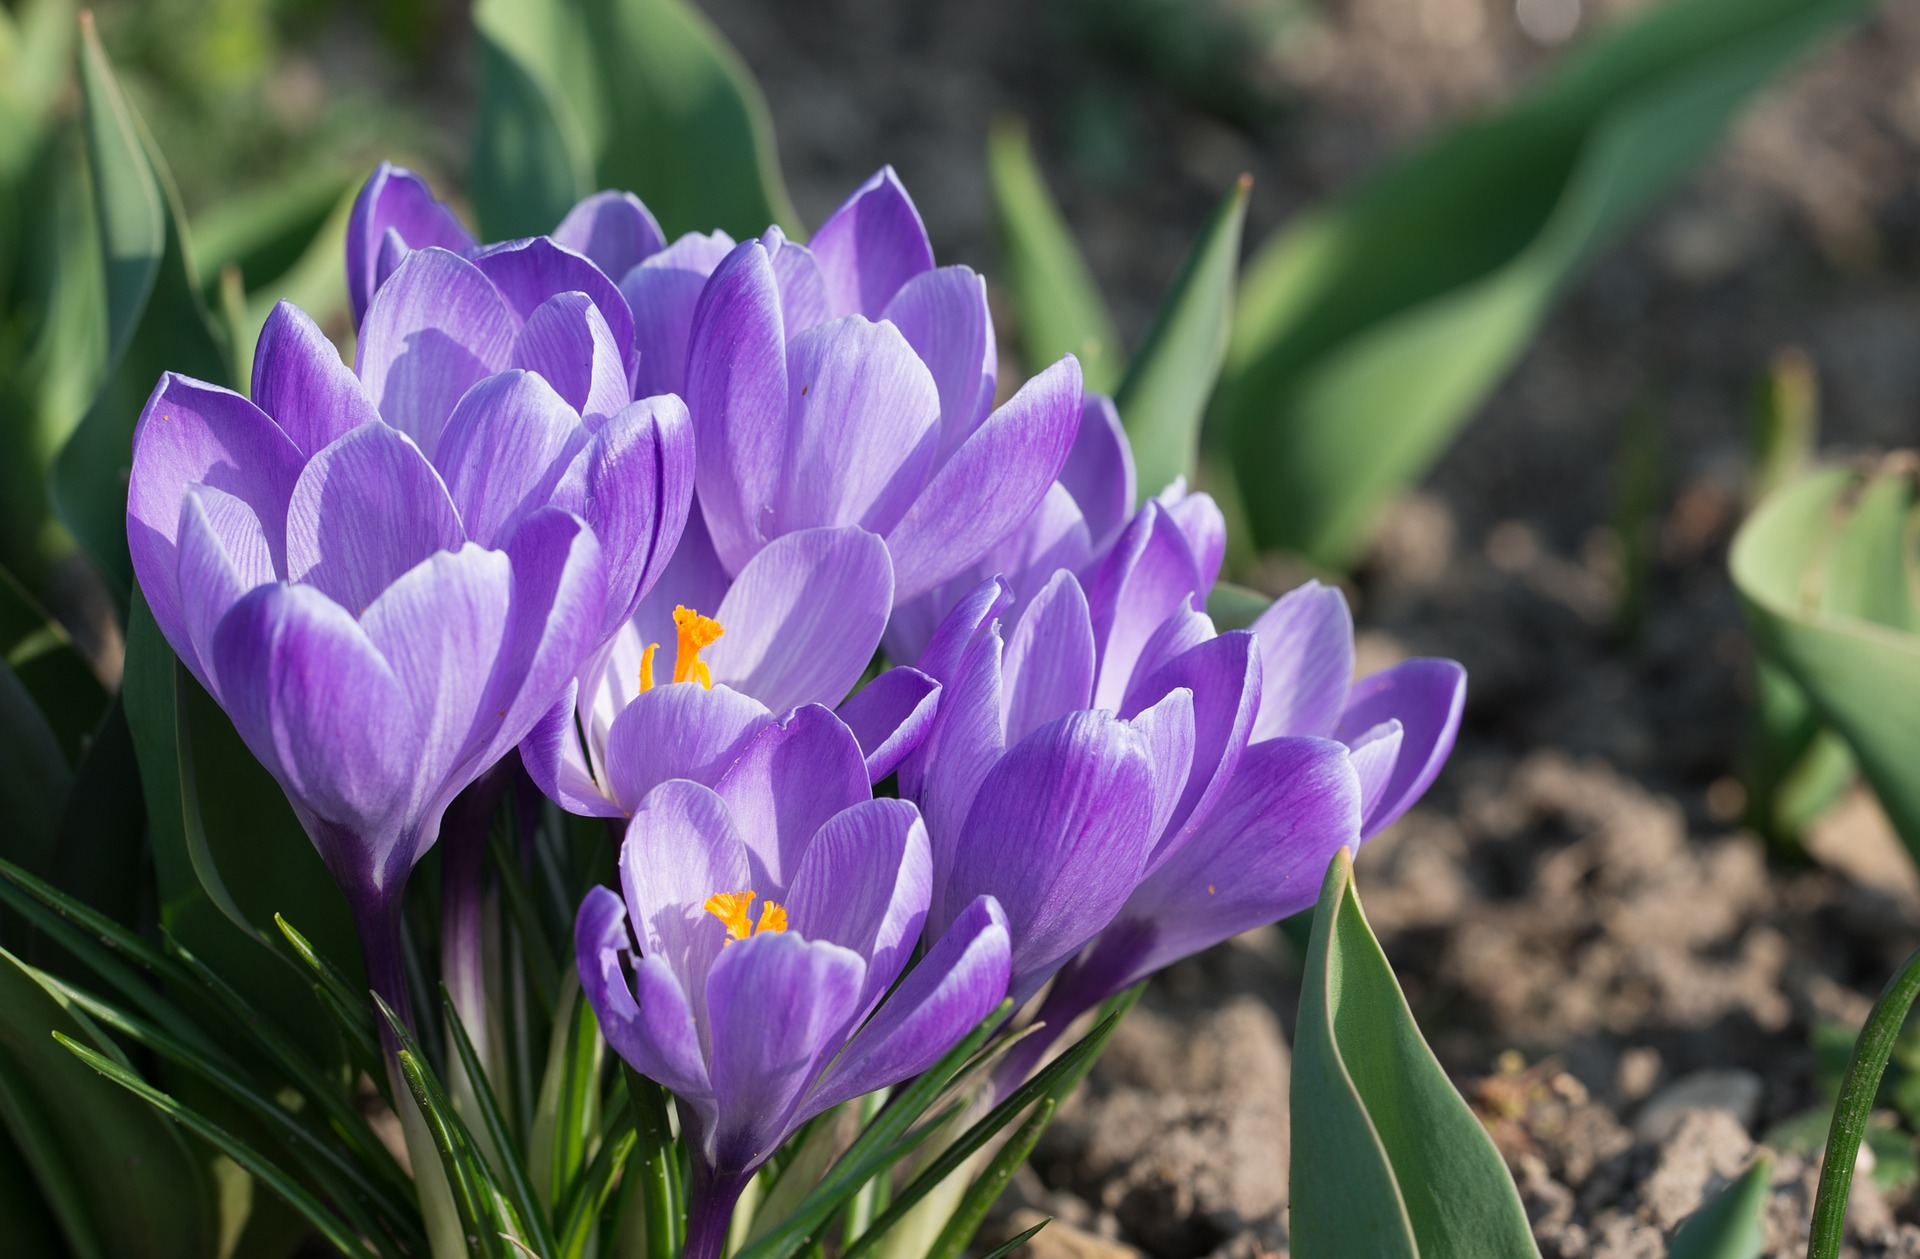 Crocuses How To Plant Grow And Care For Crocus Flowers The Old